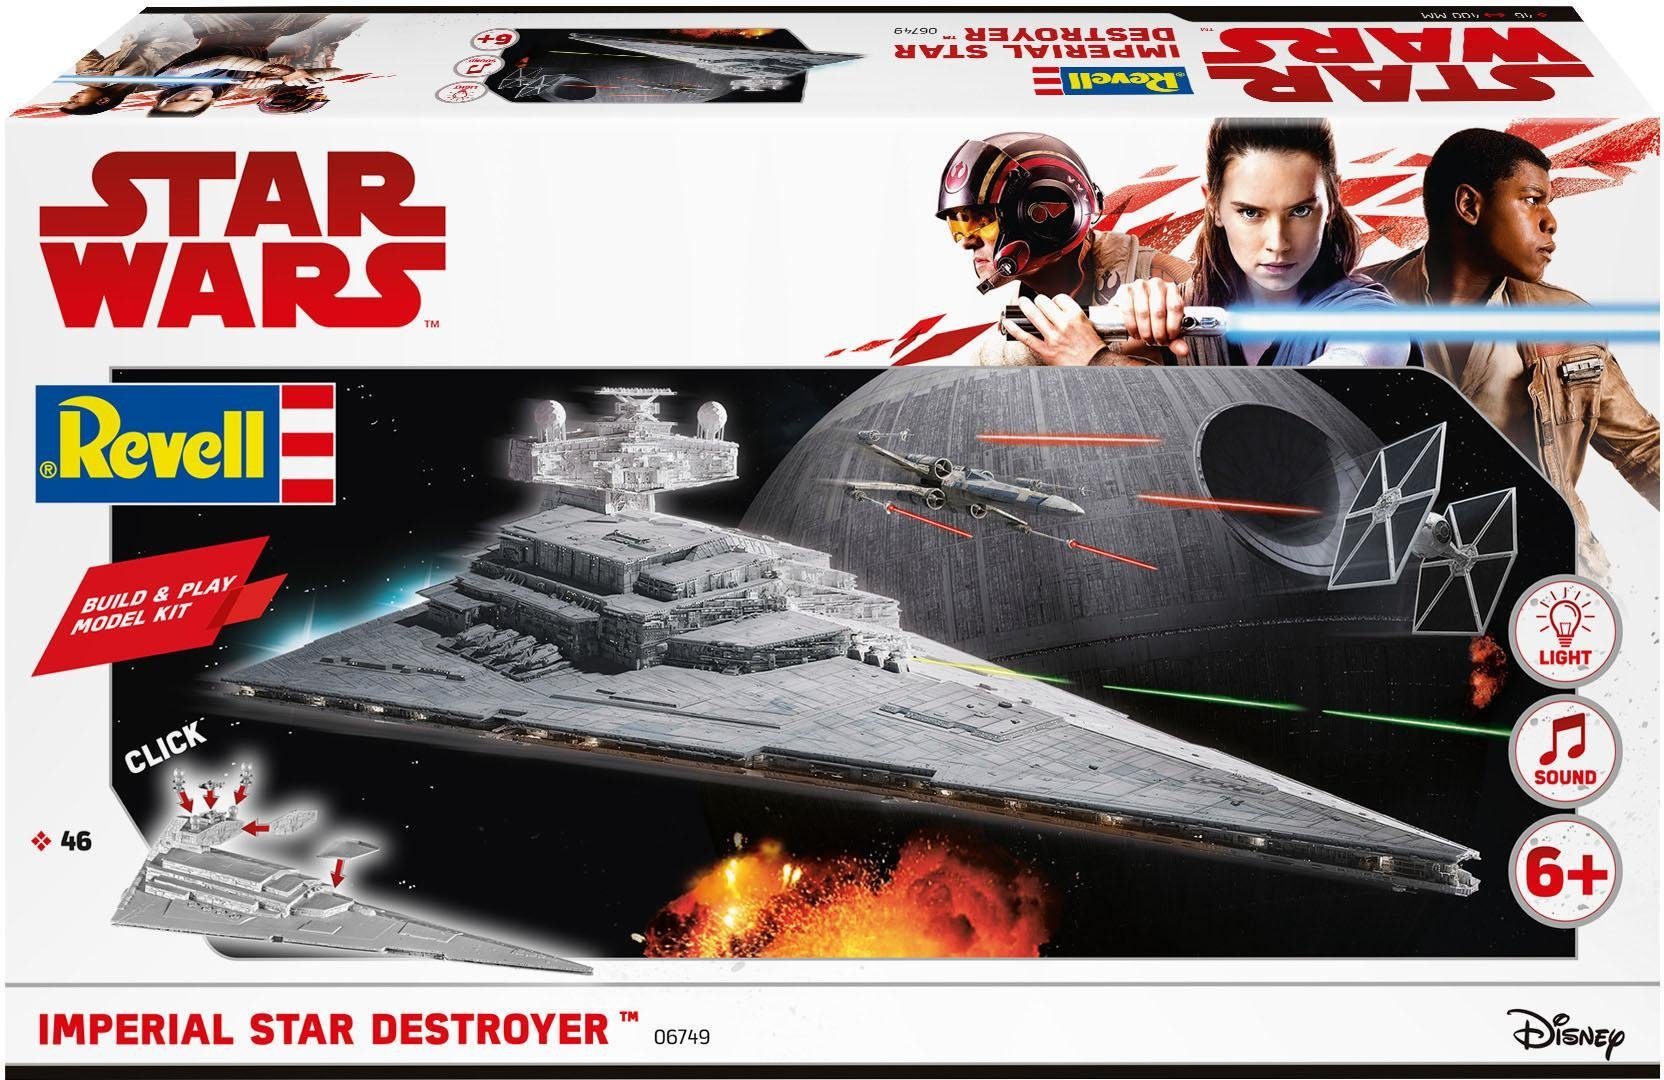 Revell Modellbausatz Raumschiff, 1:4000, »Build & Play-Disney Star Wars™ Imperial Star Destroyer™«